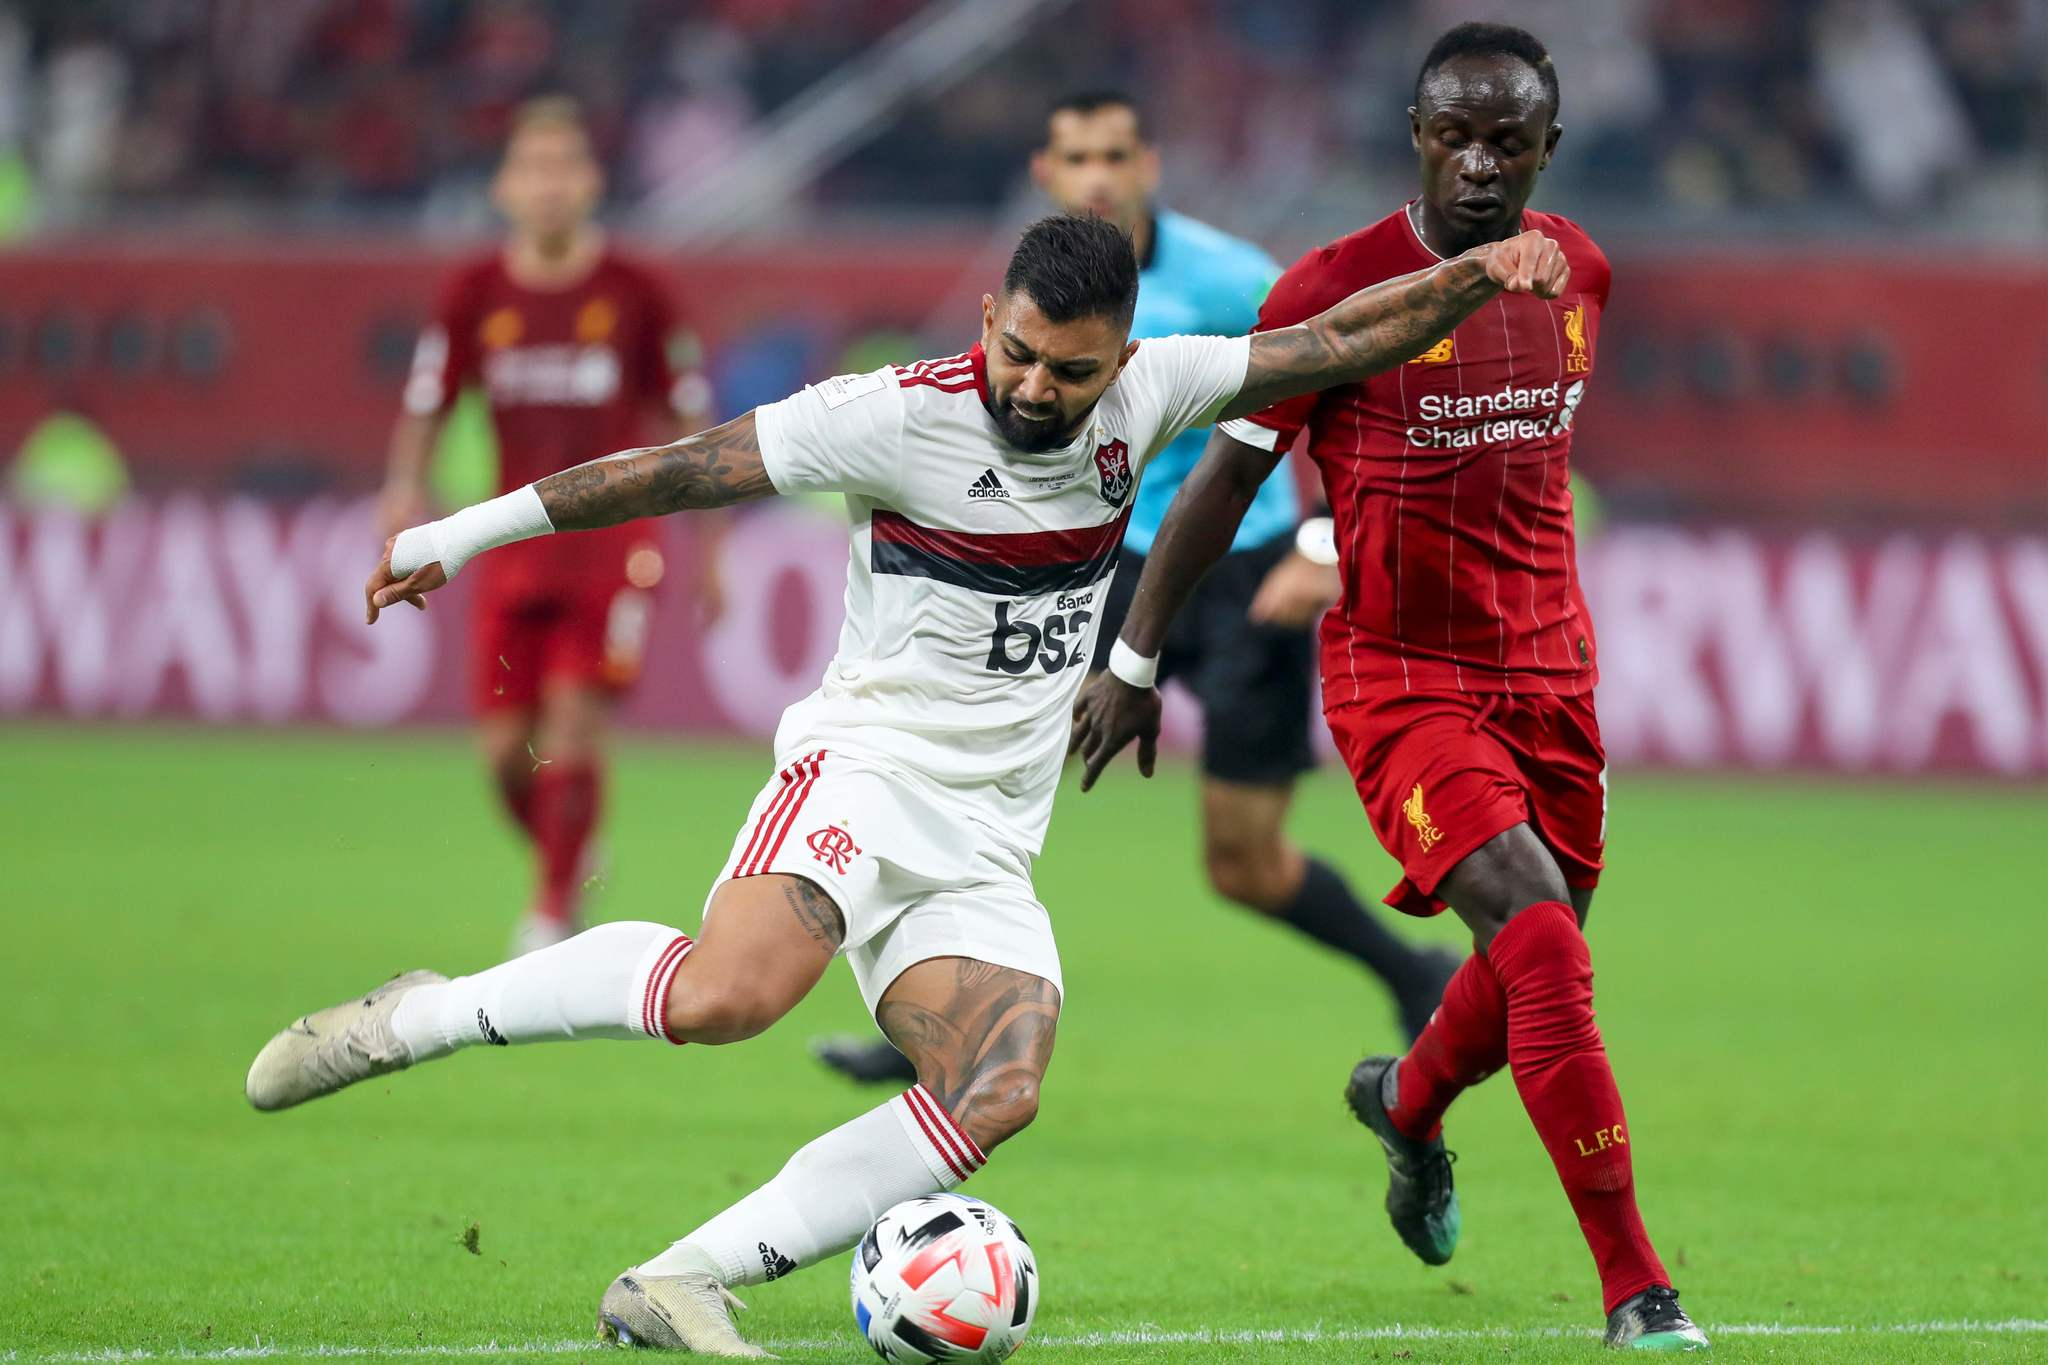 Flamengos forward Gabriel <HIT>Barbosa</HIT> (L) attempts a shot as he is marked by Liverpools Senegalese striker Sadio Mane during the 2019 FIFA Club World Cup Final football match between Englands Liverpool and Brazils Flamengo at the Khalifa International Stadium in the Qatari capital Doha on December 21, 2019. (Photo by KARIM JAAFAR / AFP)